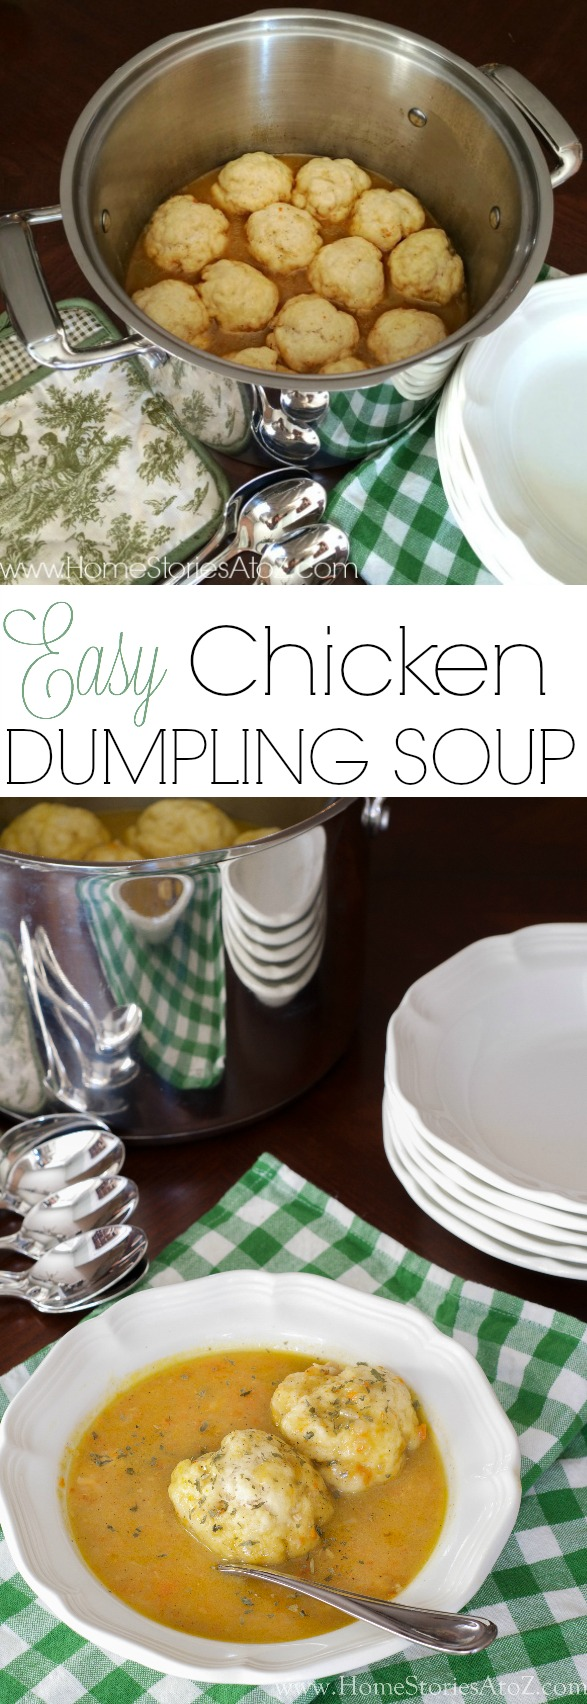 Easy Chicken Dumpling Soup